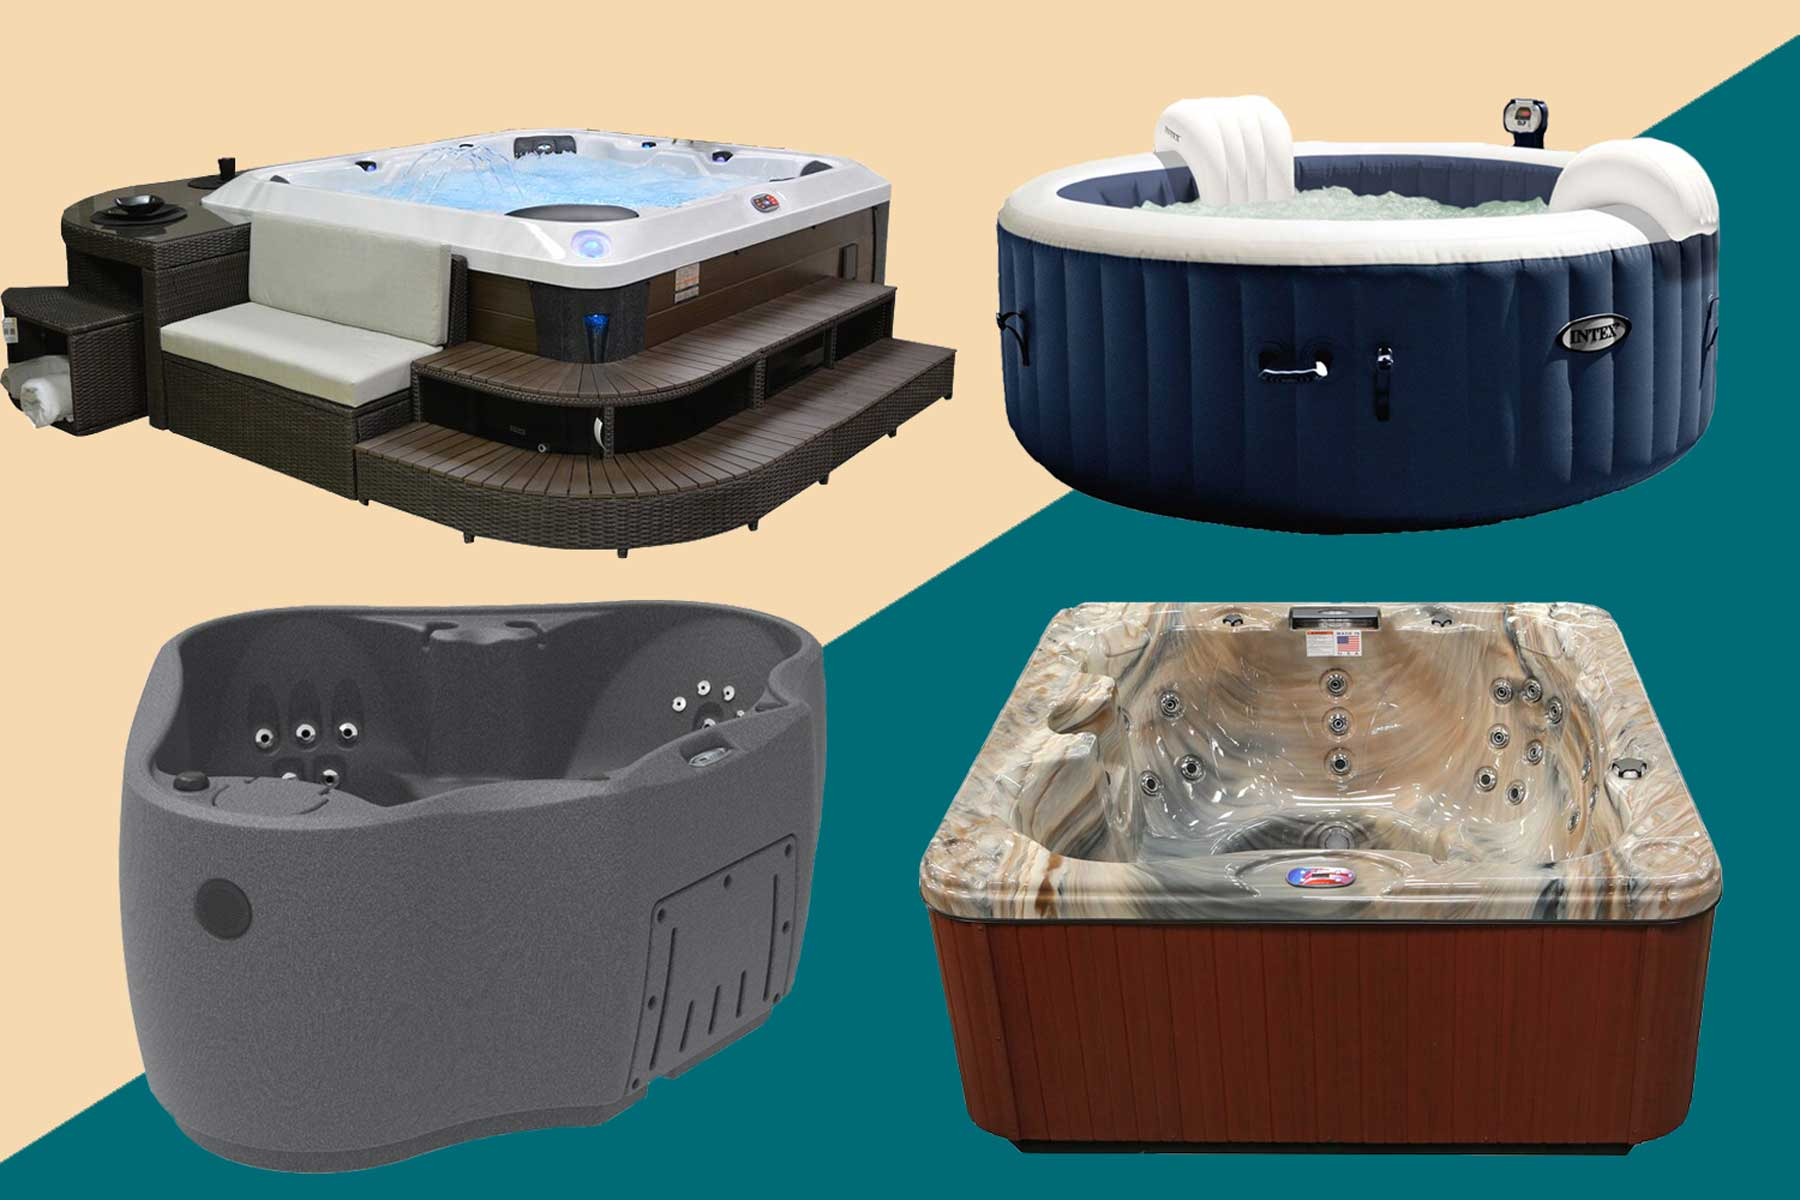 Hot Tubs from Wayfair and Target